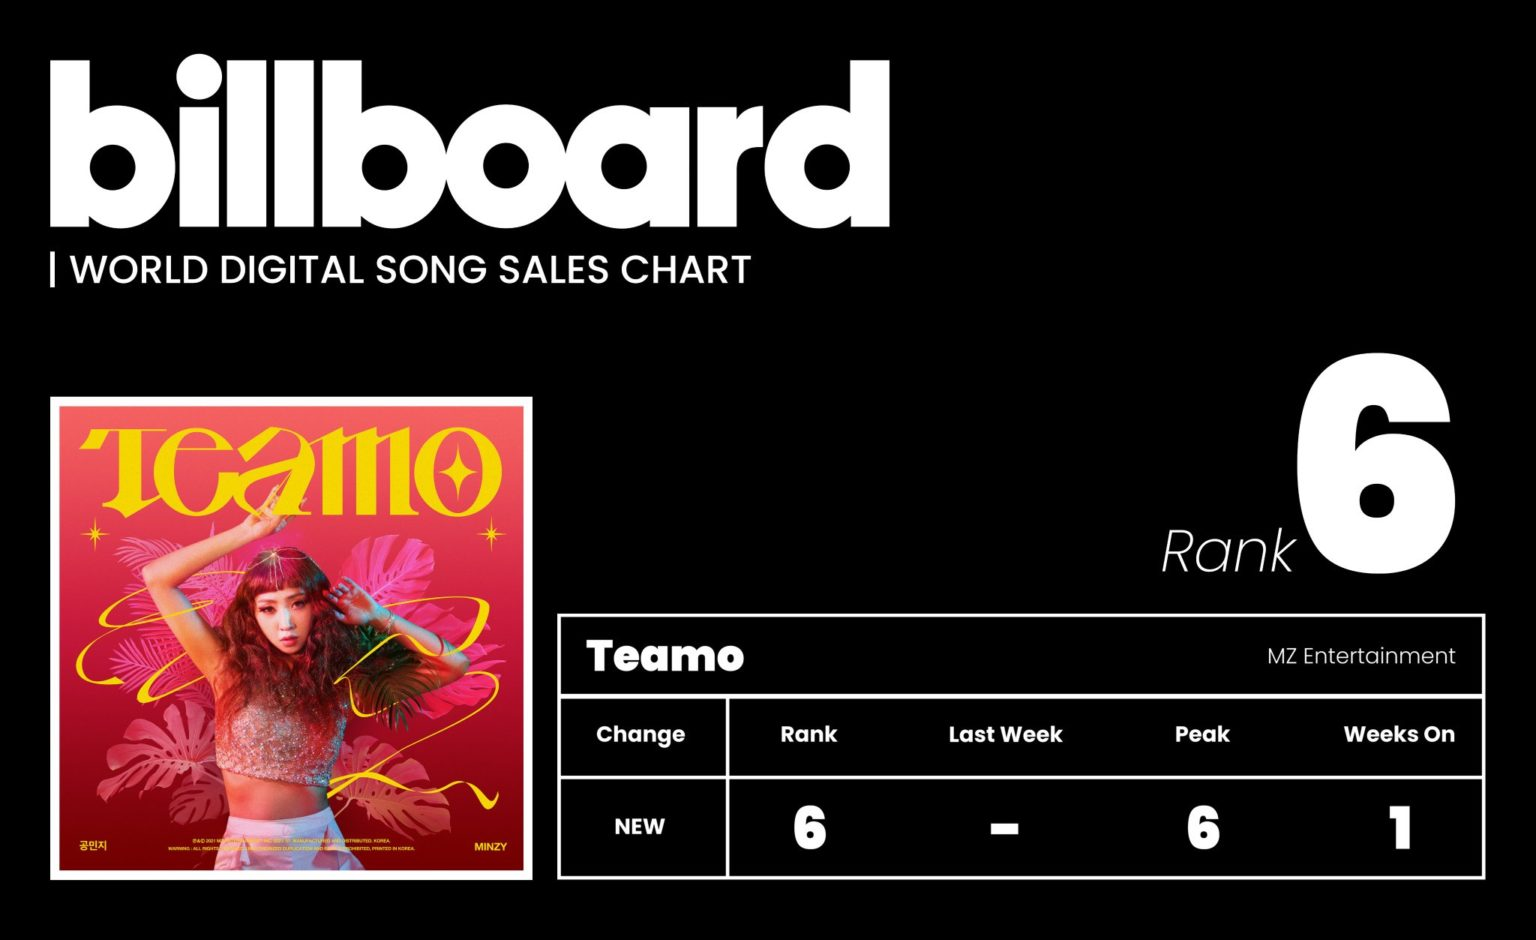 Minzy Tops Billboard's Highest Ranking Since Solo Debut With 'Teamo'